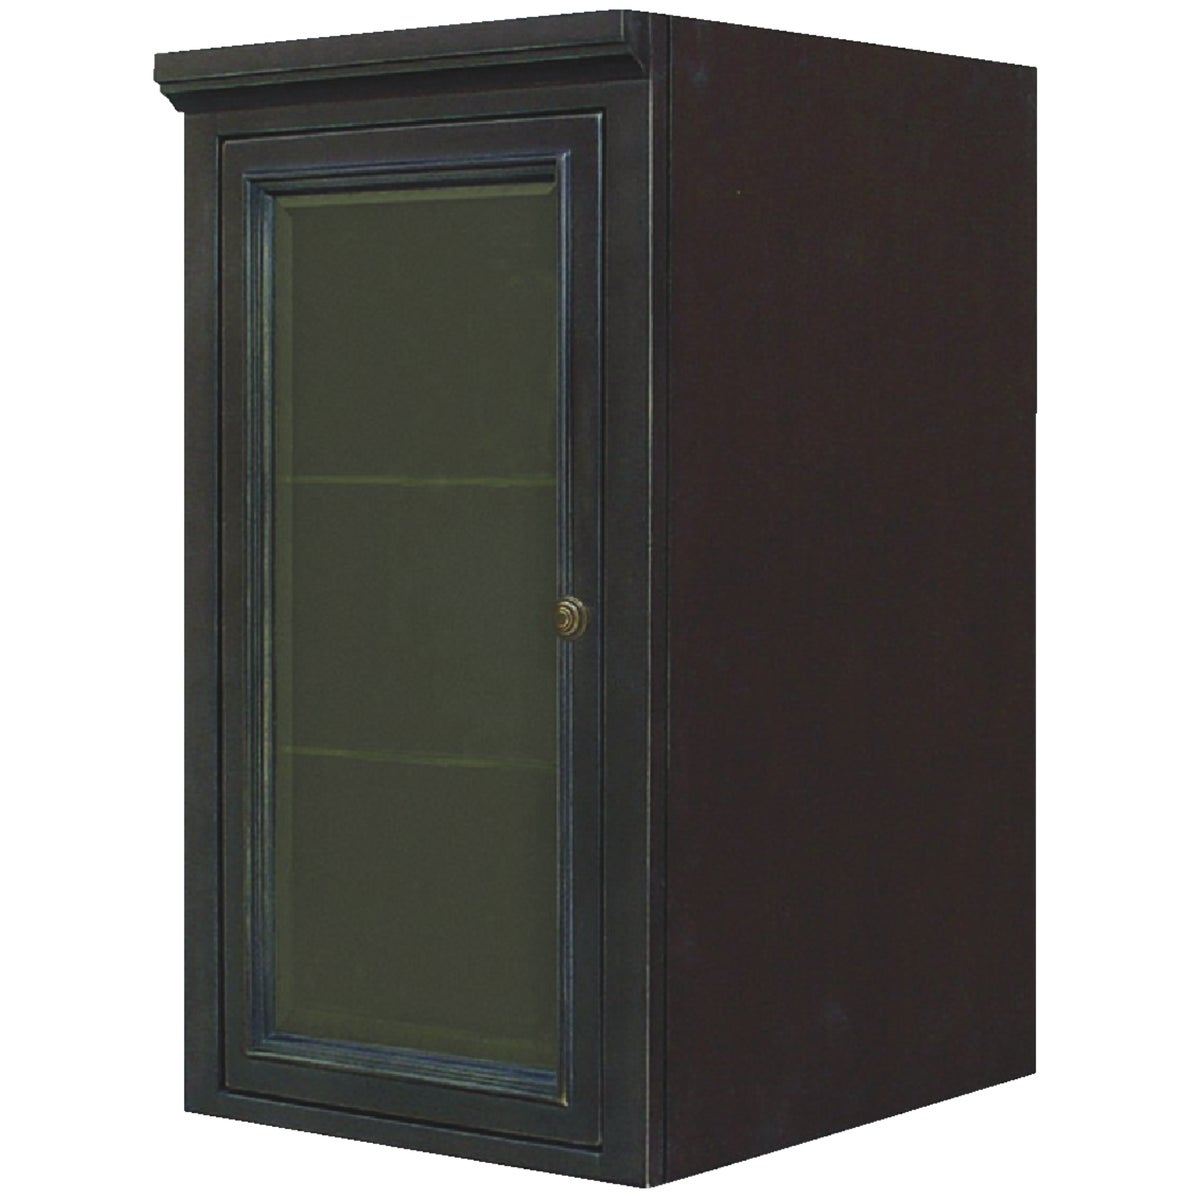 BH 18X21 LINEN CAB TOP - BH1821T by Sunnywood Products